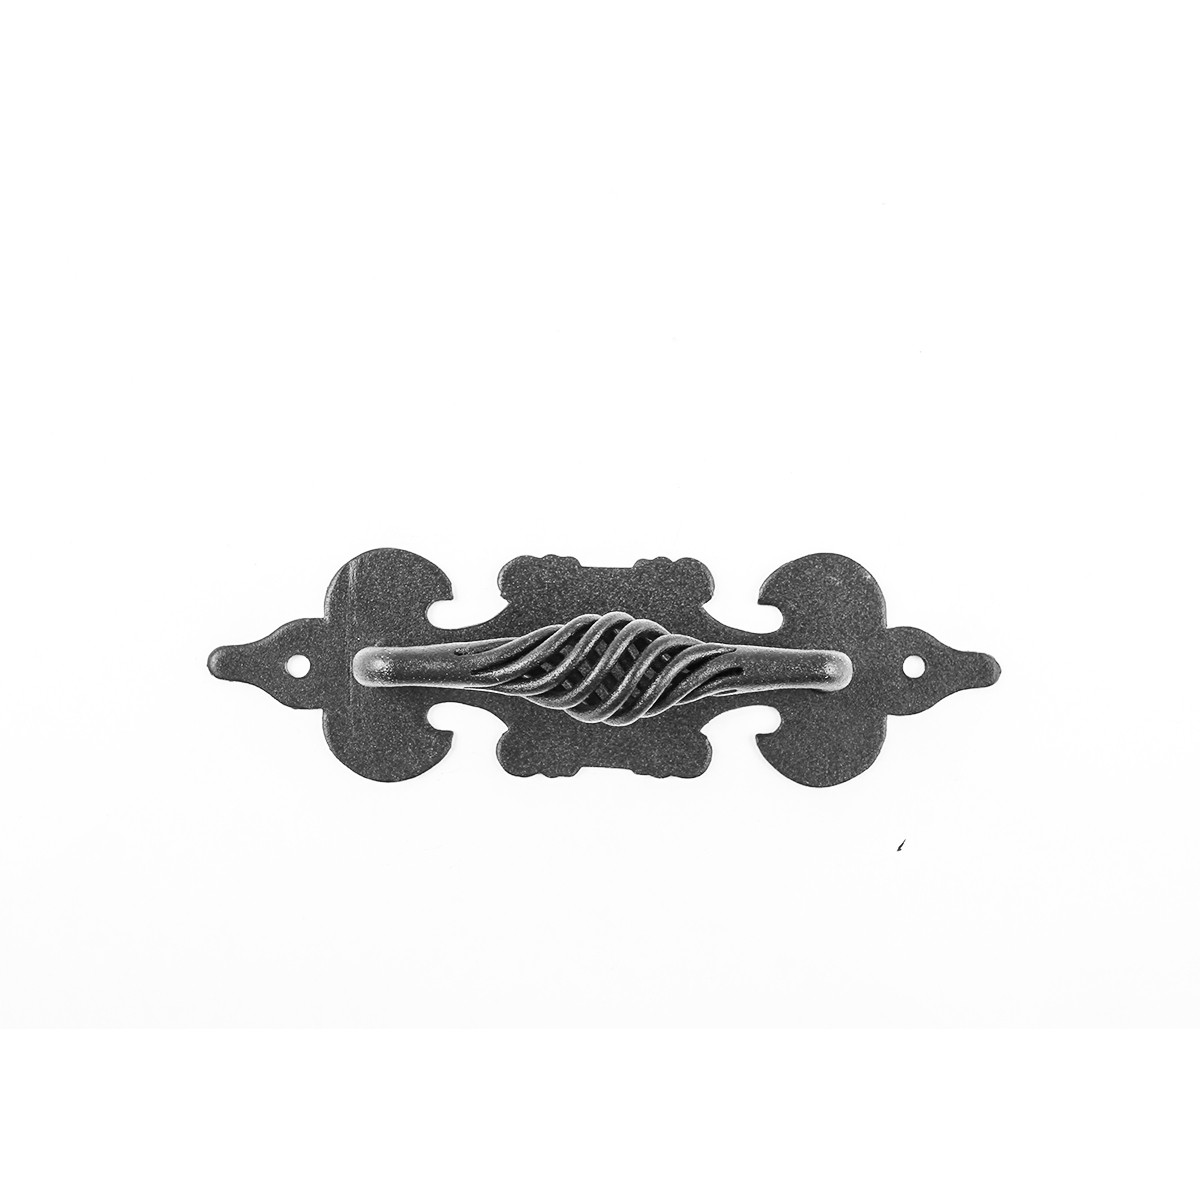 10 Cabinet Pull Birdcage Black Wrought Iron 6 Furniture Hardware Cabinet Pull Cabinet Hardware